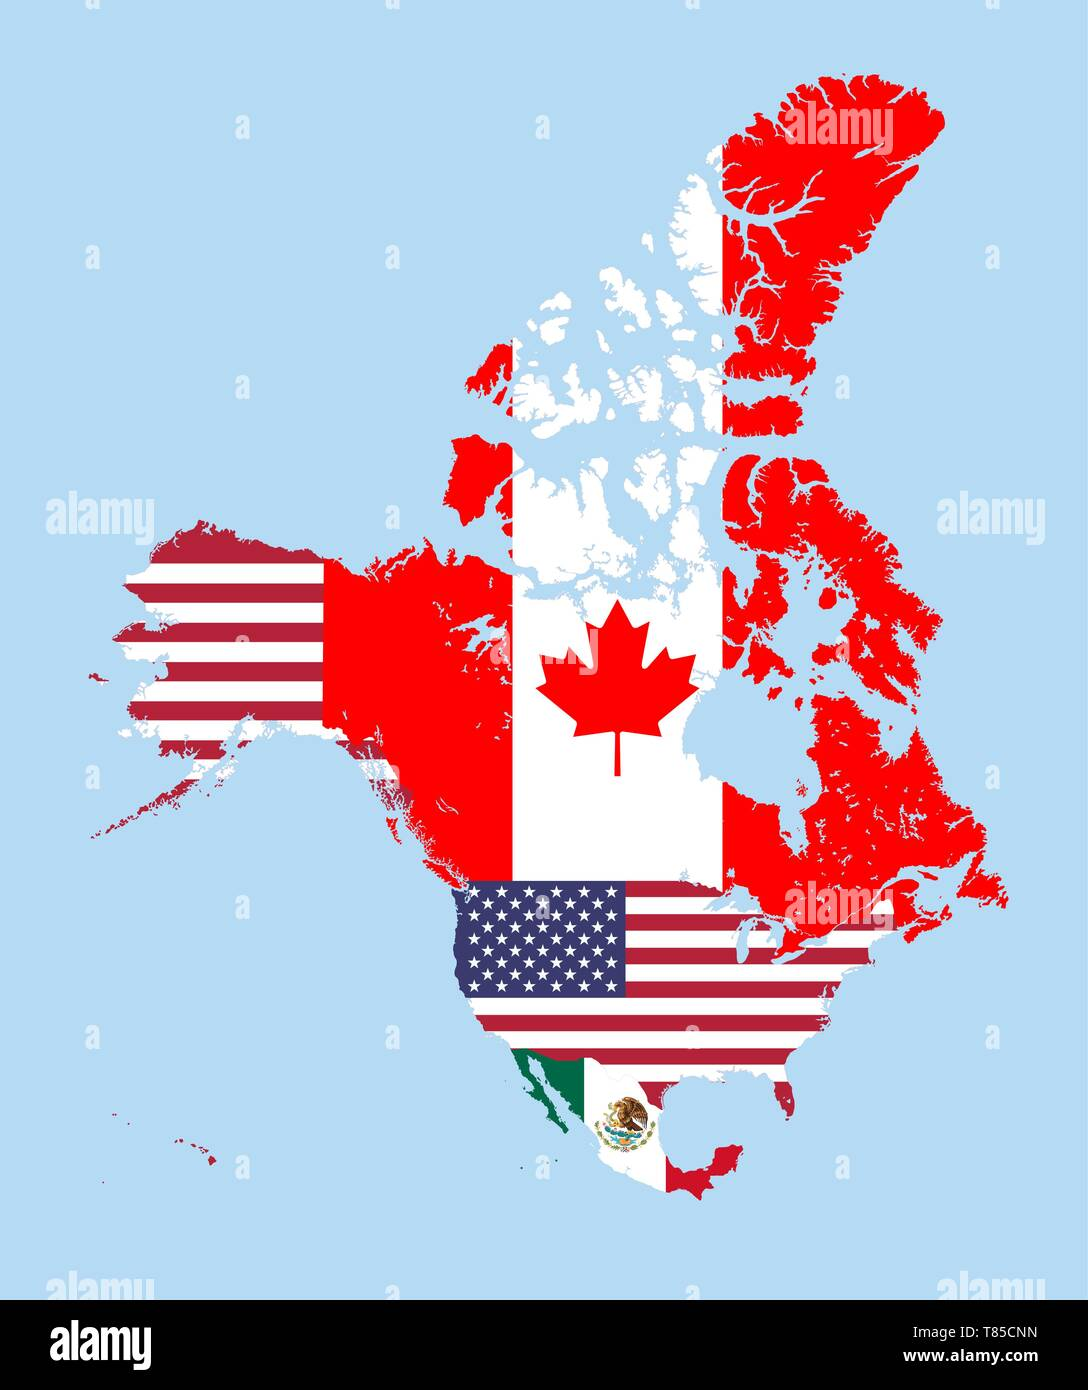 Canada, United States and Mexico maps combined with flags ... on united states flag border, united states flaf, american flag, united states flag soccer, united states flag with eagle, united states flag drawing, chiapas state flag, united states america flag, 1830 united states flag, united states flag 1861, united states flag history, londonderry ireland flag, united states national flag, united states flag background, mexican flag, united states flag waving, united states flag texture, united states post flag, united states flag code, united states army flag,